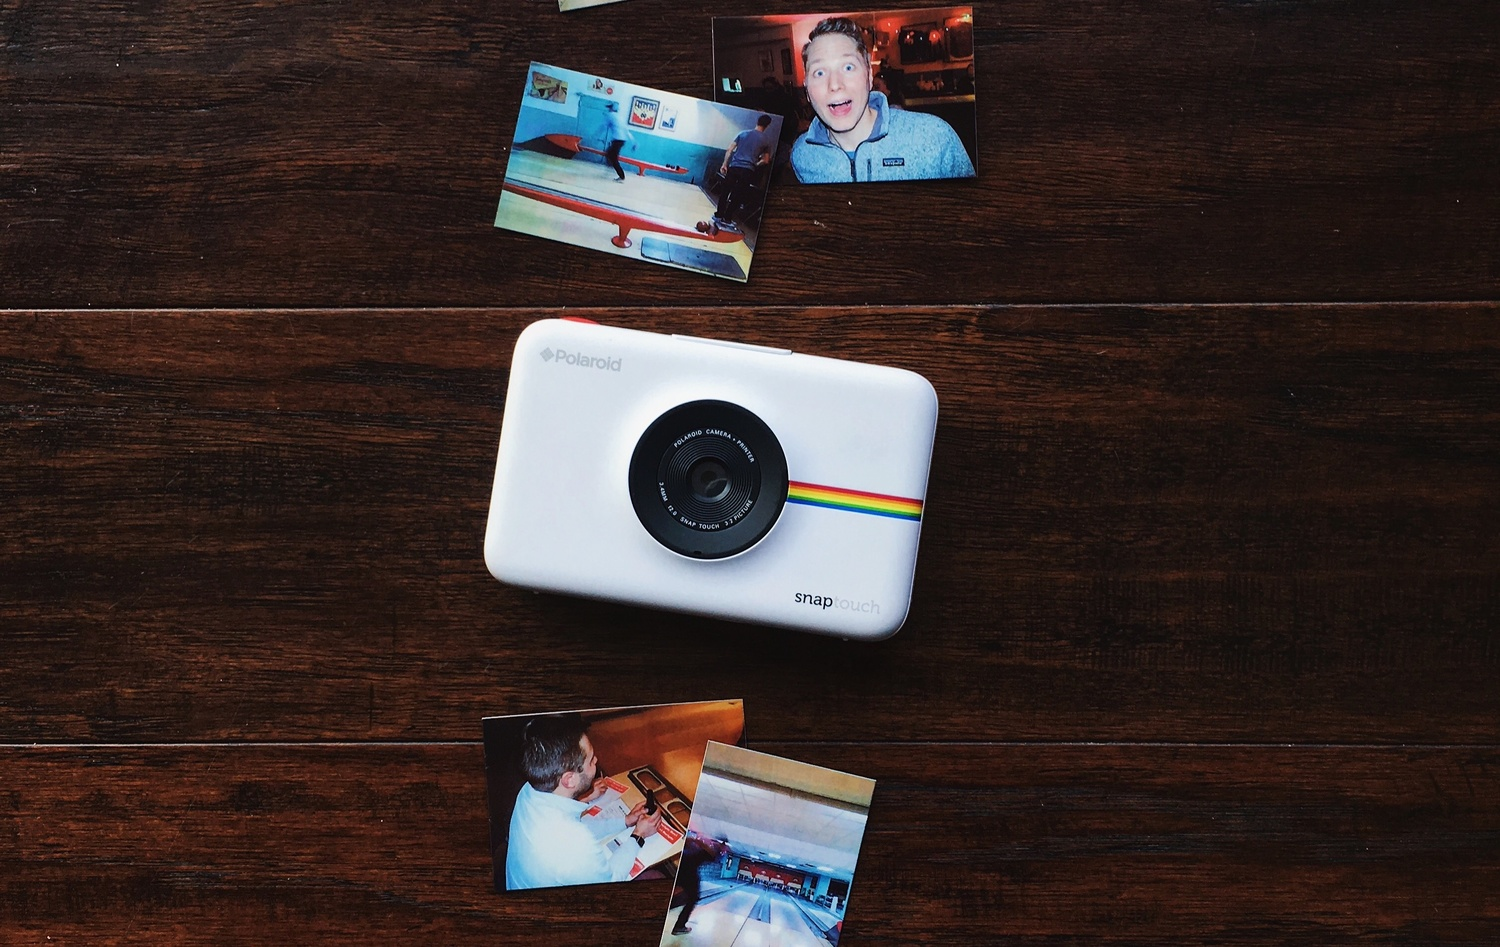 How To Use Polaroid Snap >> Fstoppers Reviews the Incredibly Fun and Very Capable Polaroid Snap Touch Camera | Fstoppers